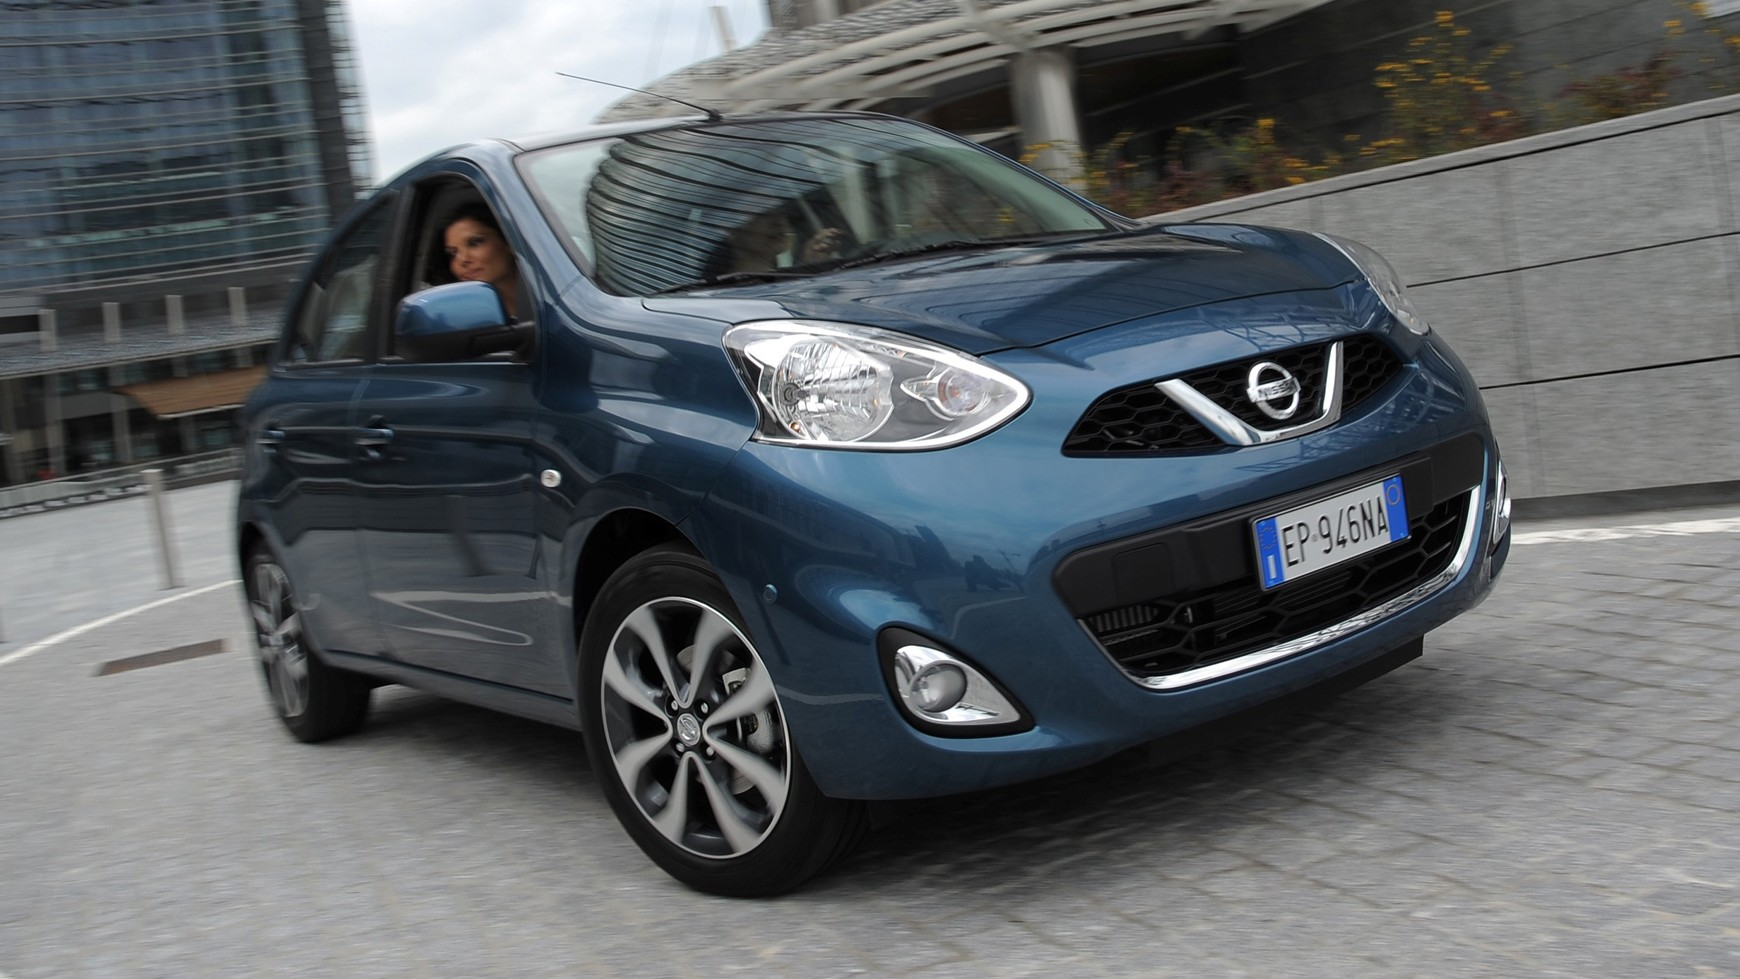 Updated Nissan Micra For Europe Gets A Major Revamp Image